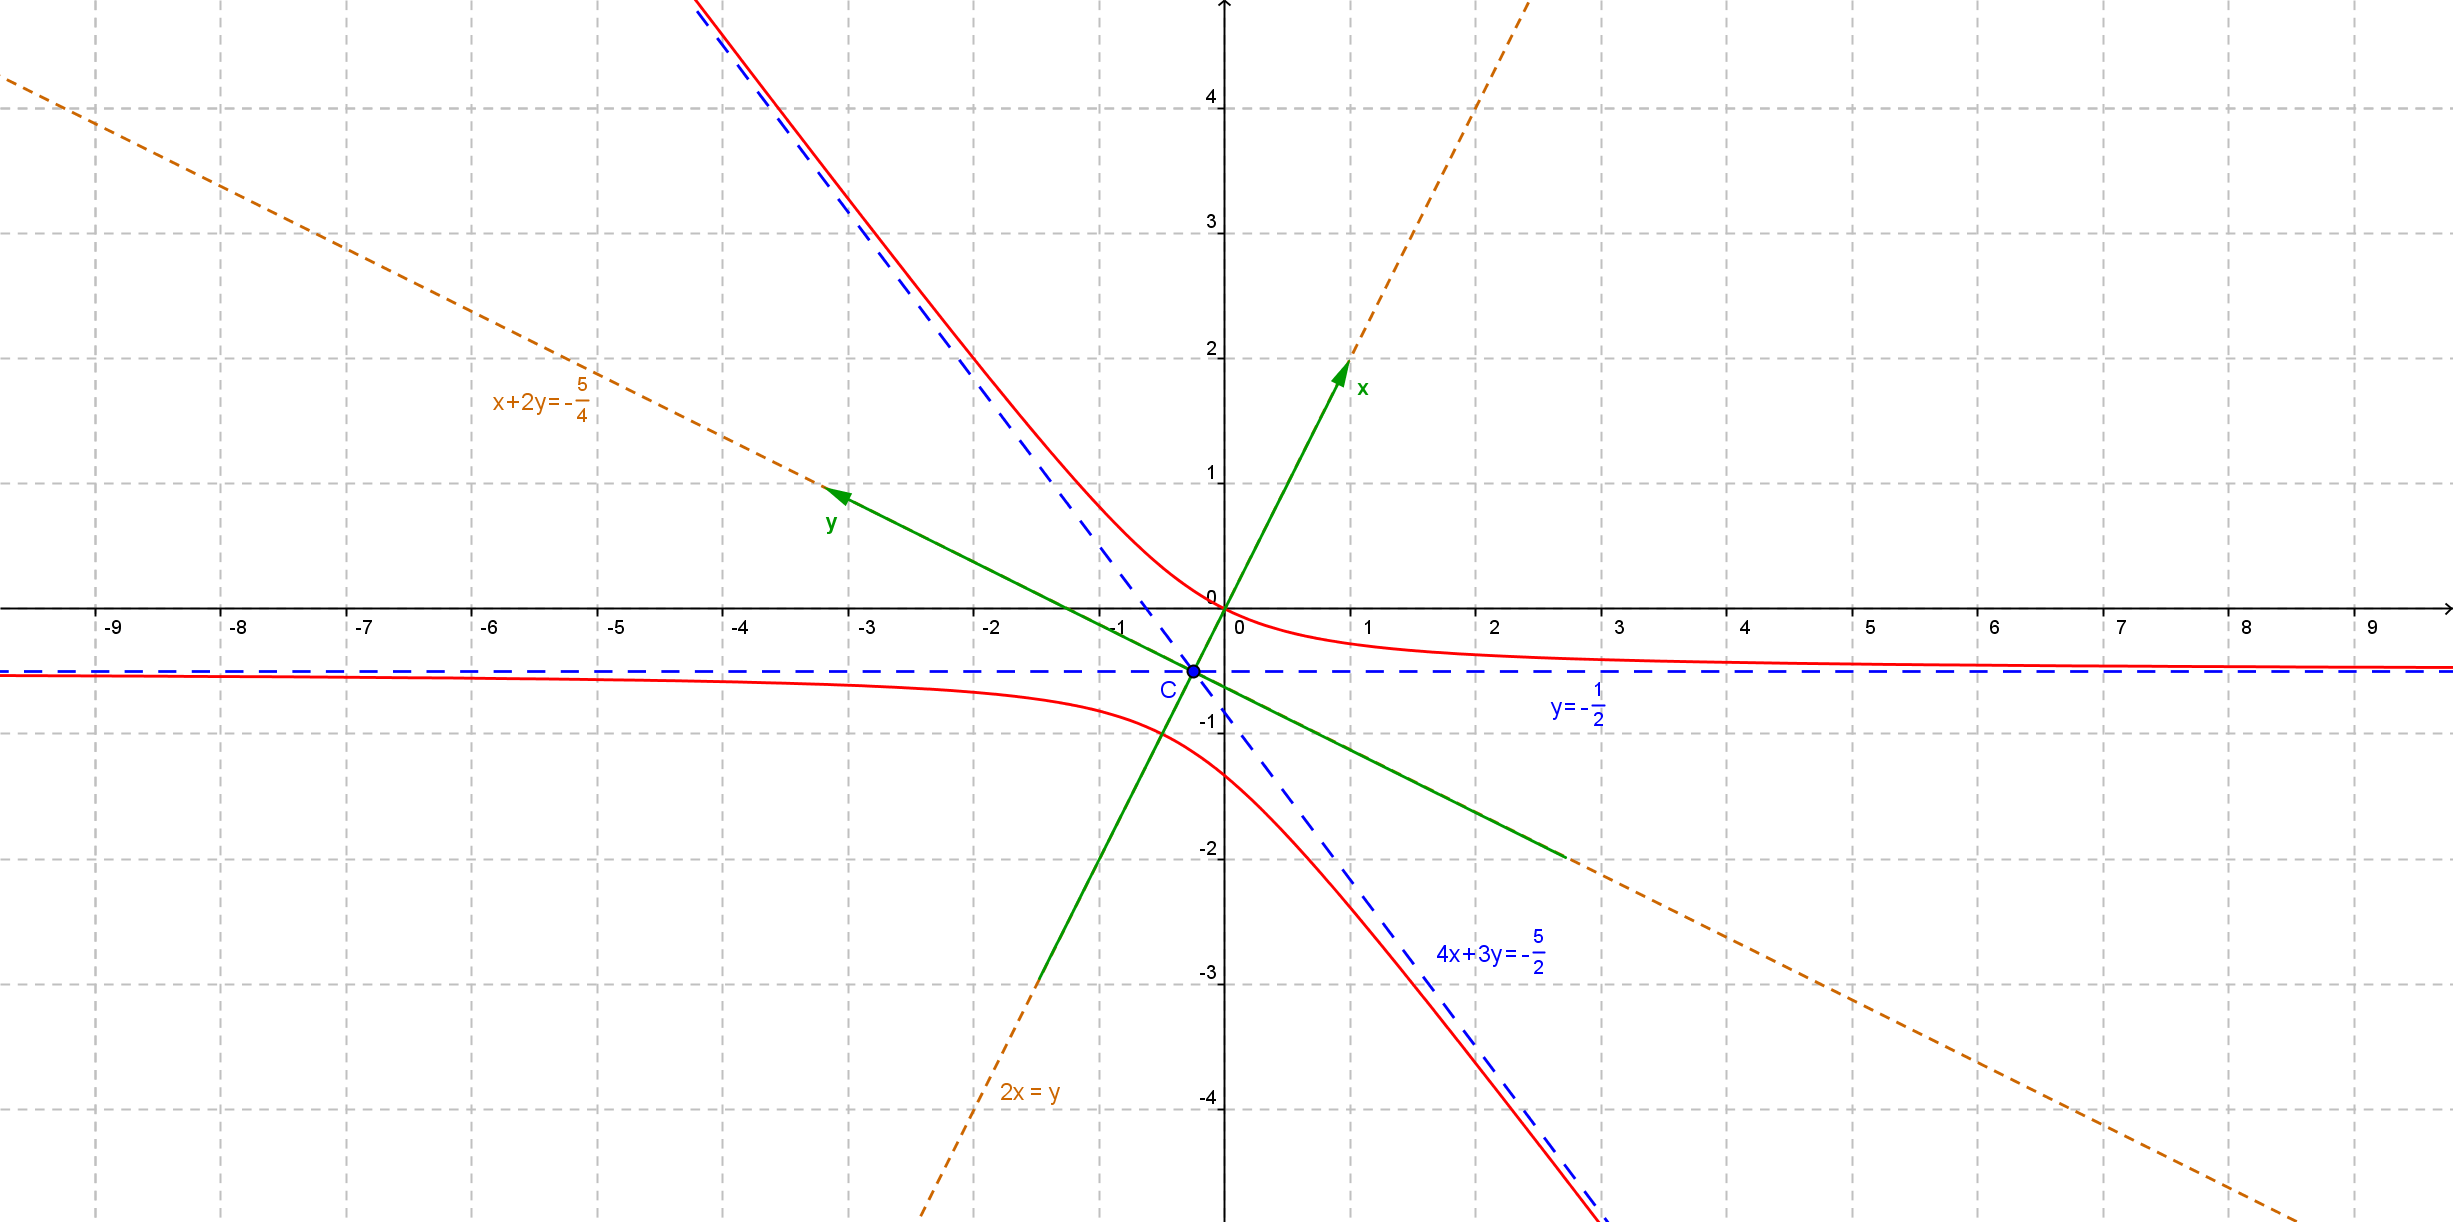 File:Conic 4xy+3y^2+2x+4y=0.png - Wikimedia Commons